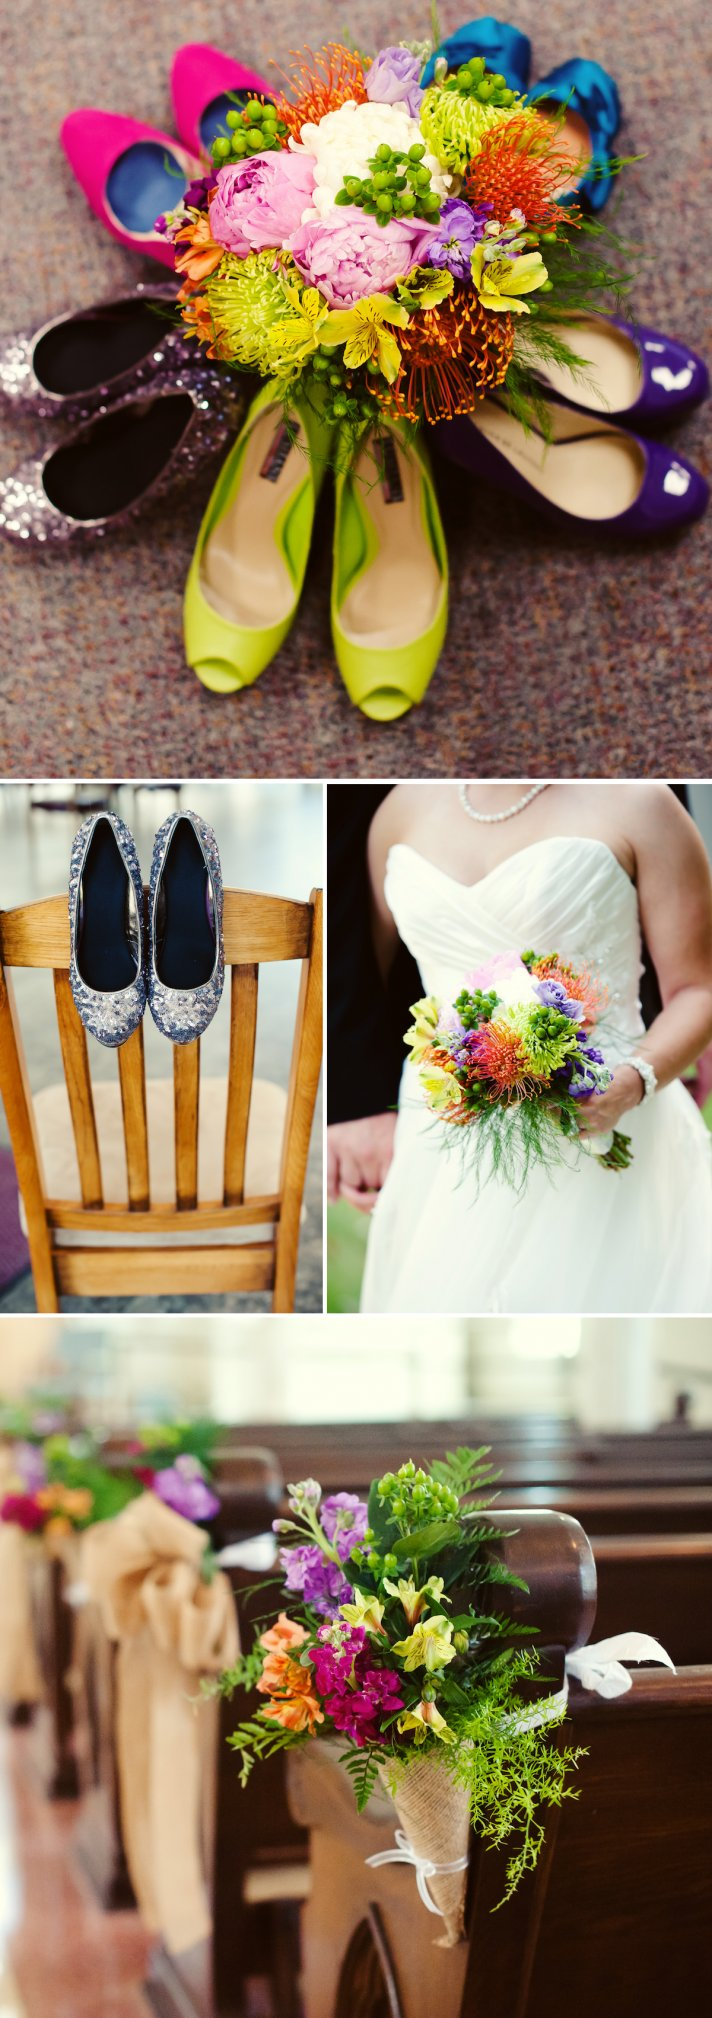 Wedding Flowers For Venue : Sweet summer wedding infused with color onewed